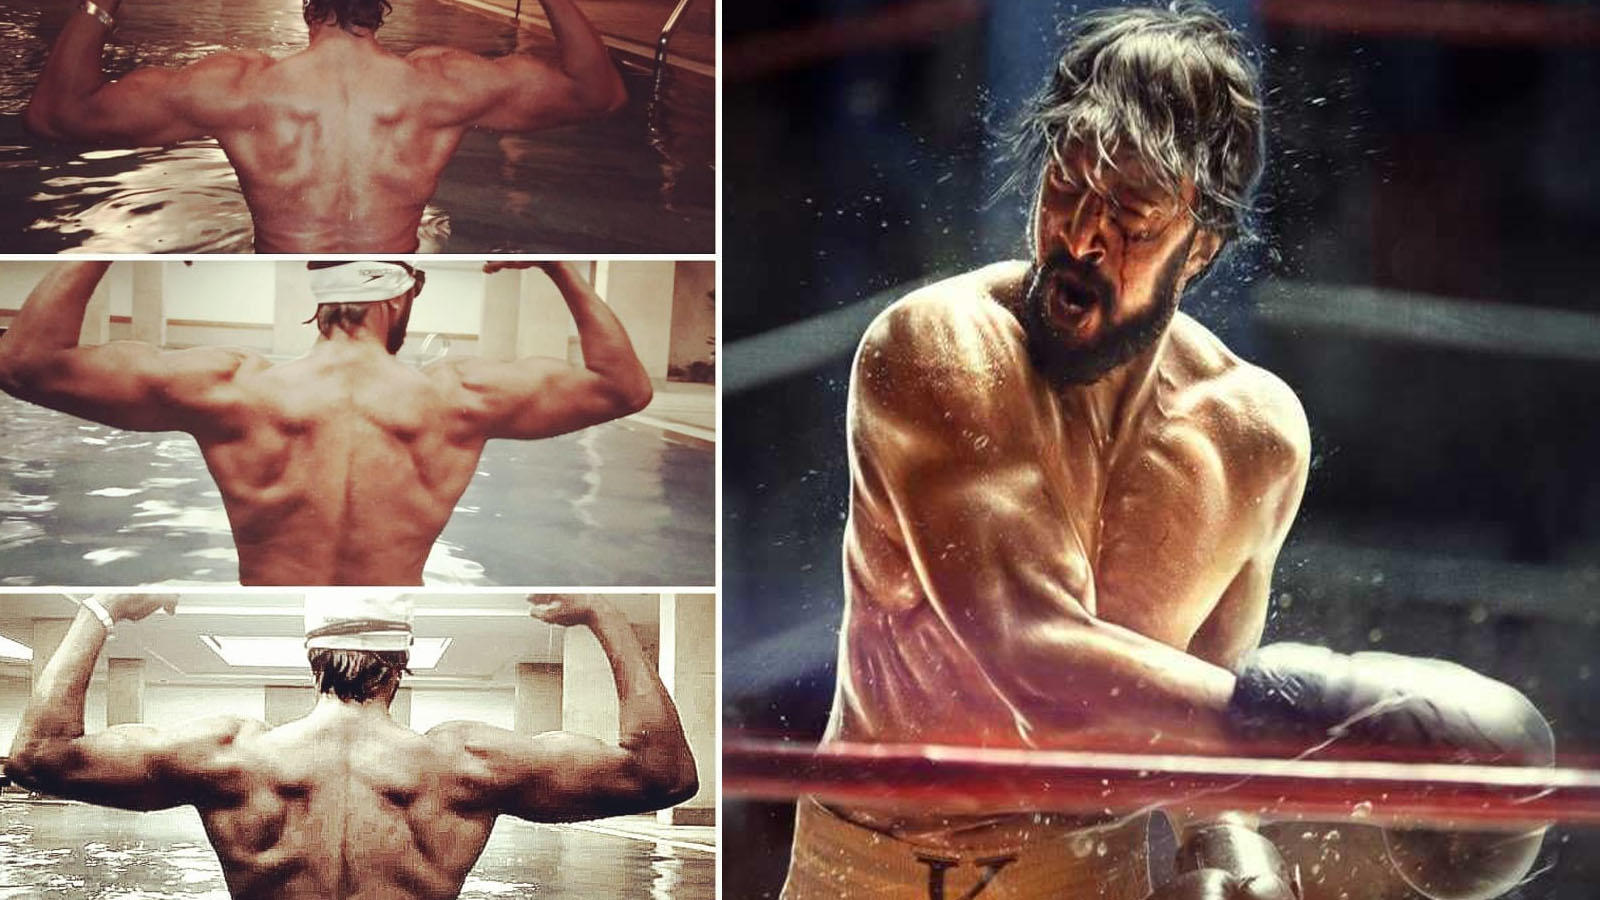 Salman Khan's co-star Kiccha Sudeep says comments on physical  transformation were 'embarrassing'